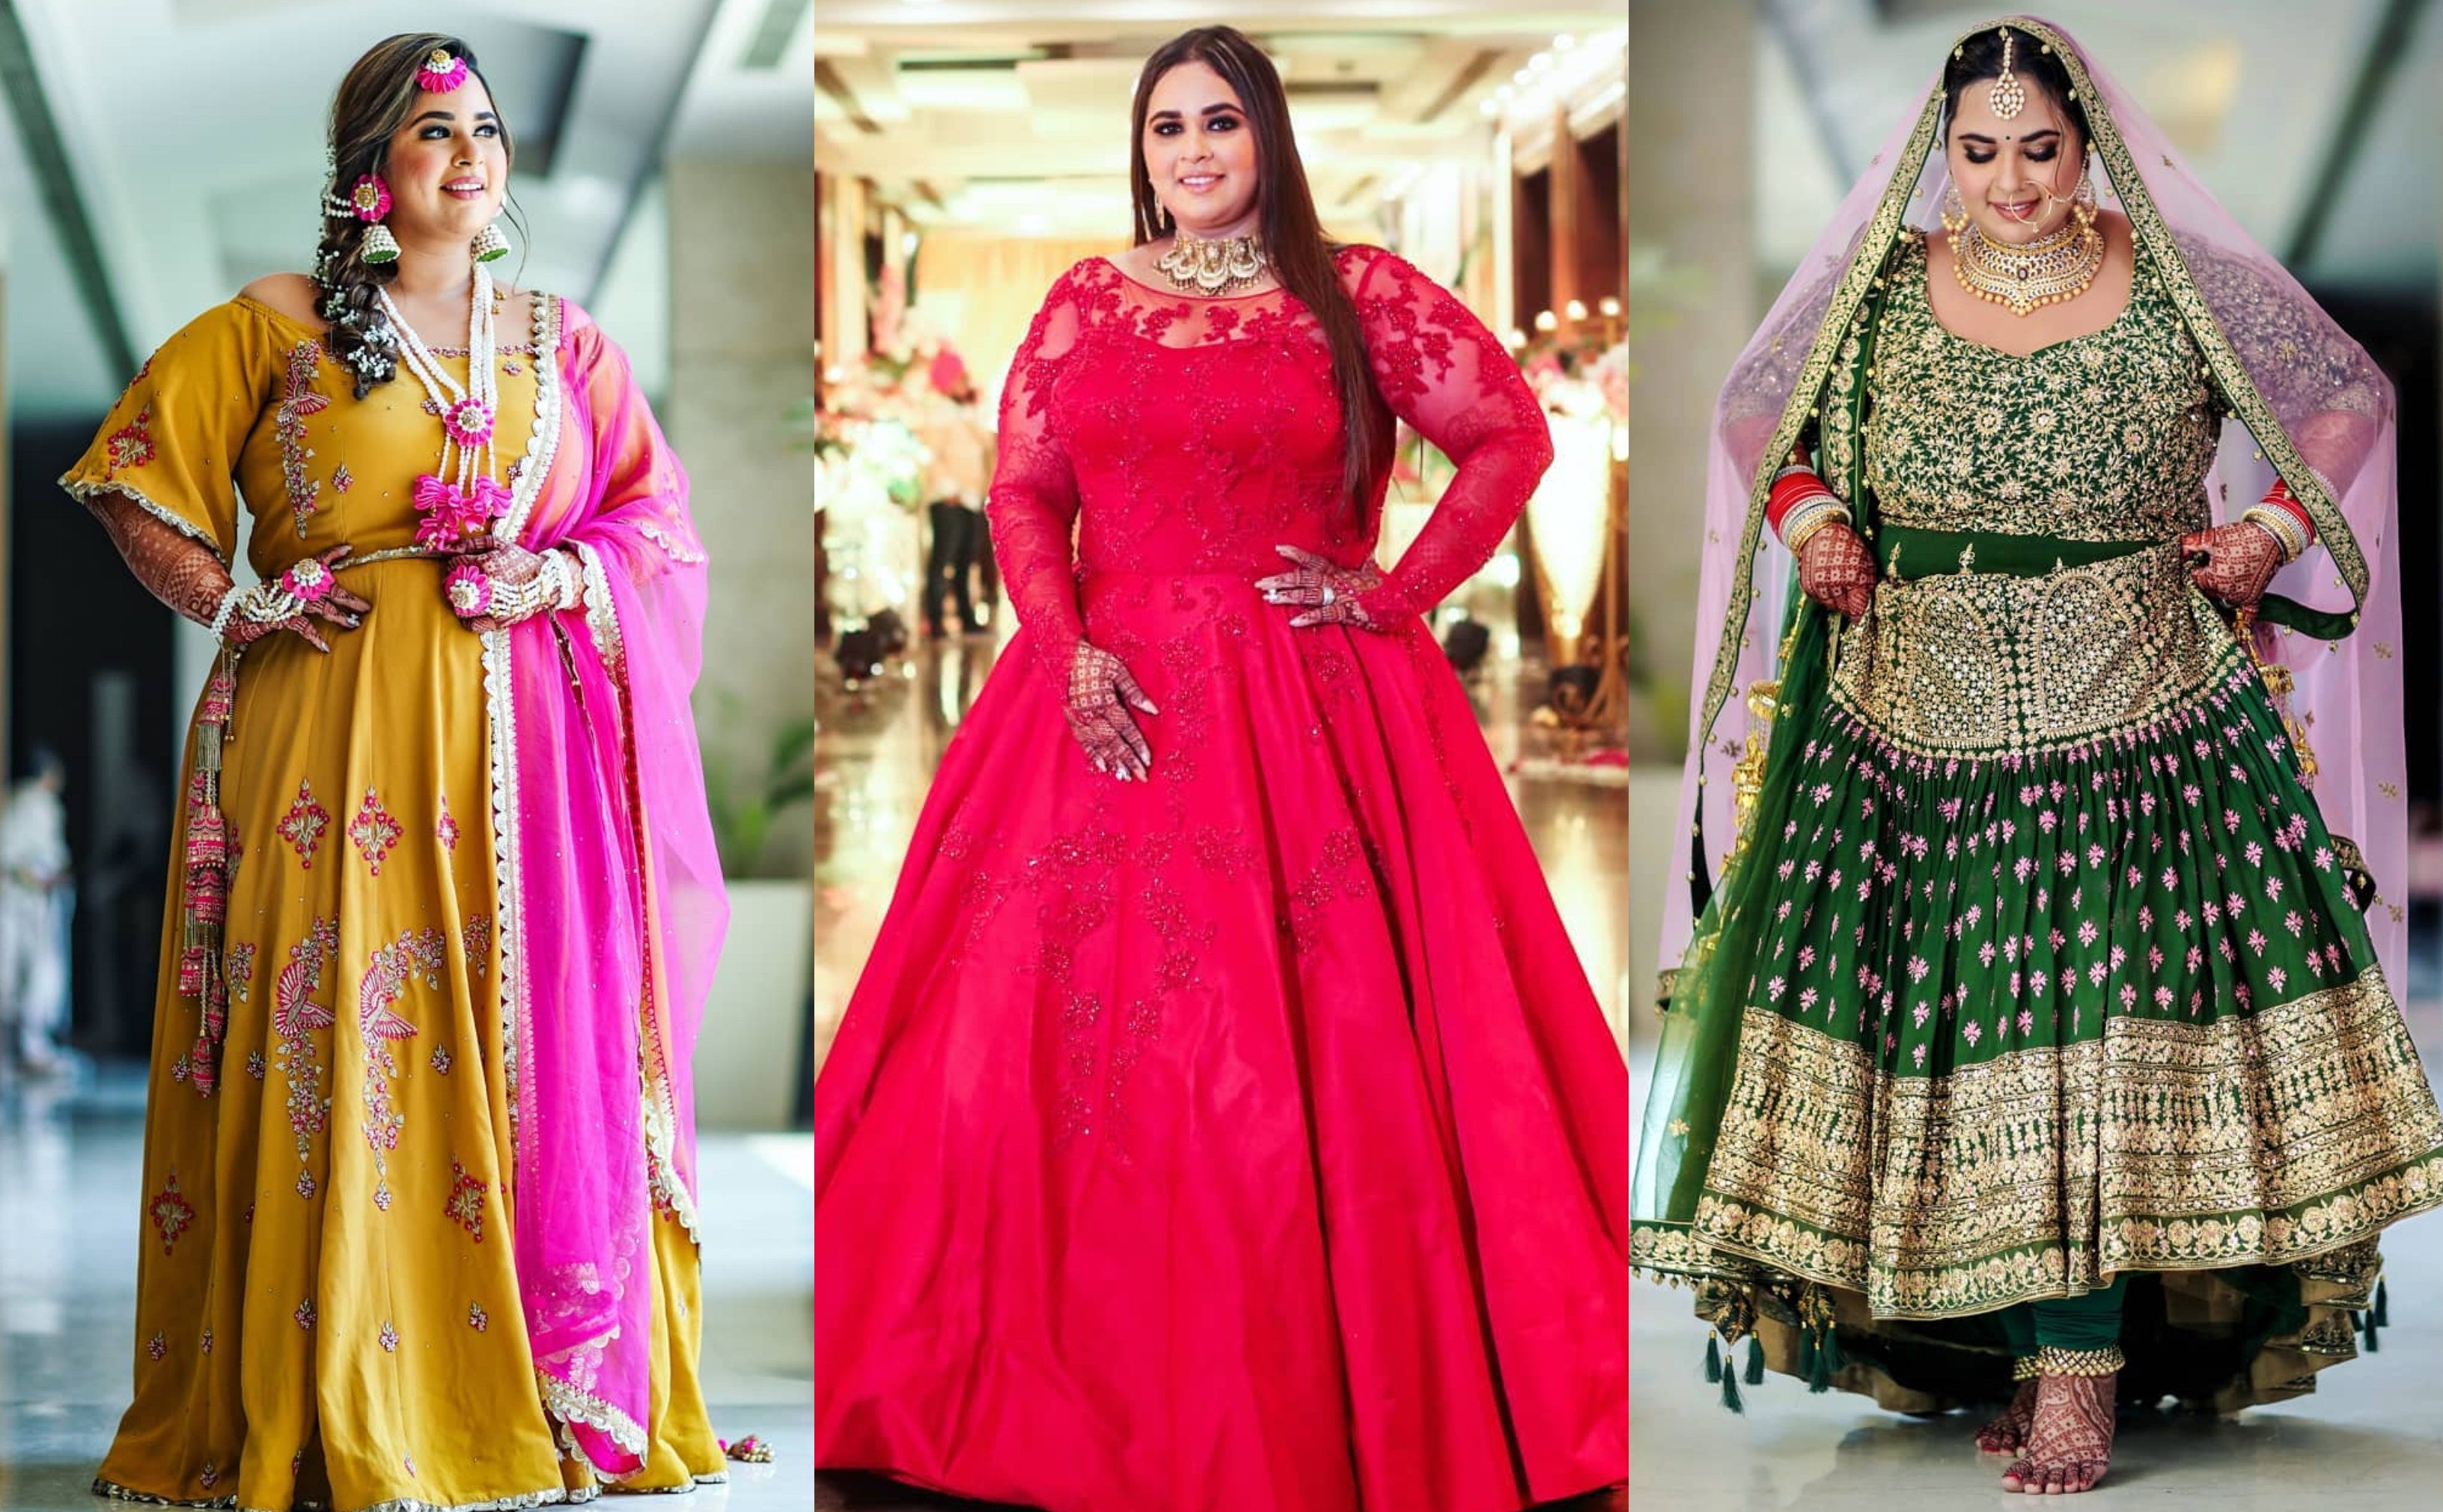 Plus Size Indian Party Dresses For Weddings 60 Off Awi Com,Sparkle Mermaid Wedding Dresses With Bling